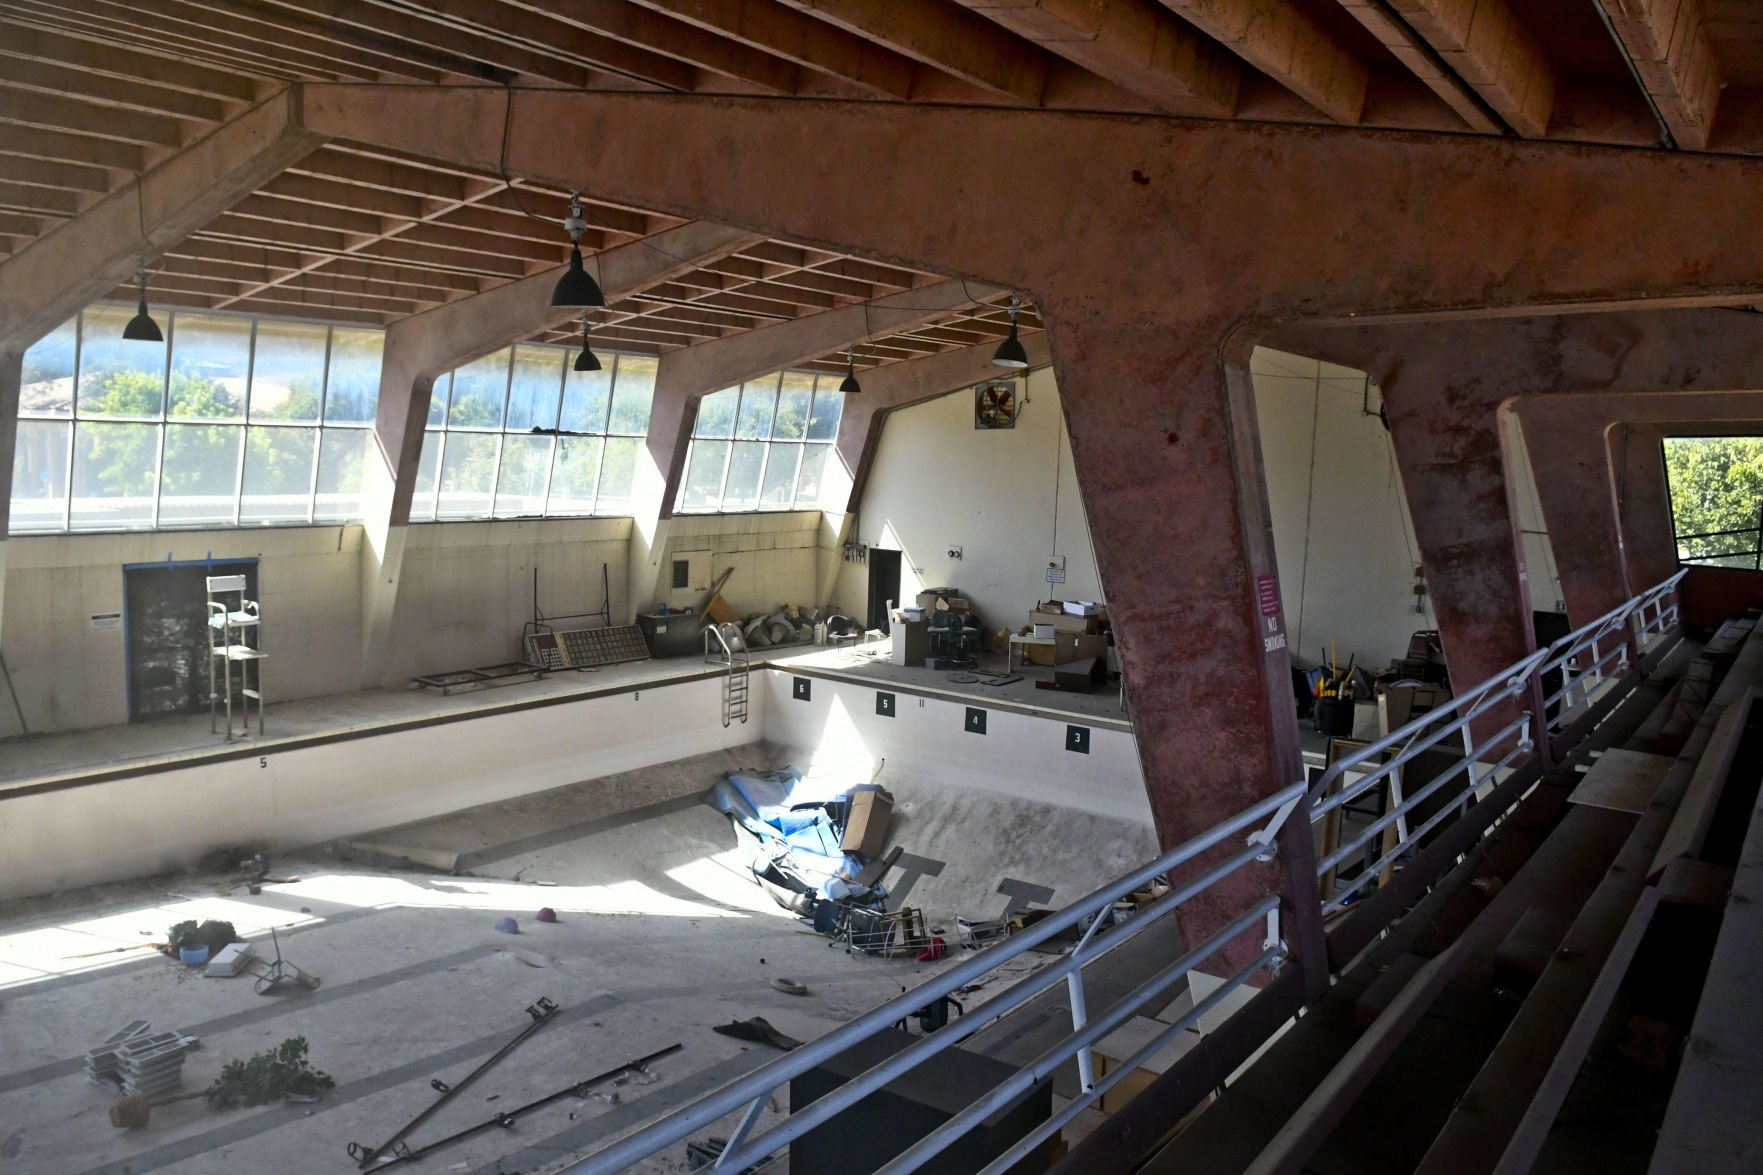 Lompoc Council Approves Demolition Of Old Abandoned Pool Building Local News Santamariatimes Com